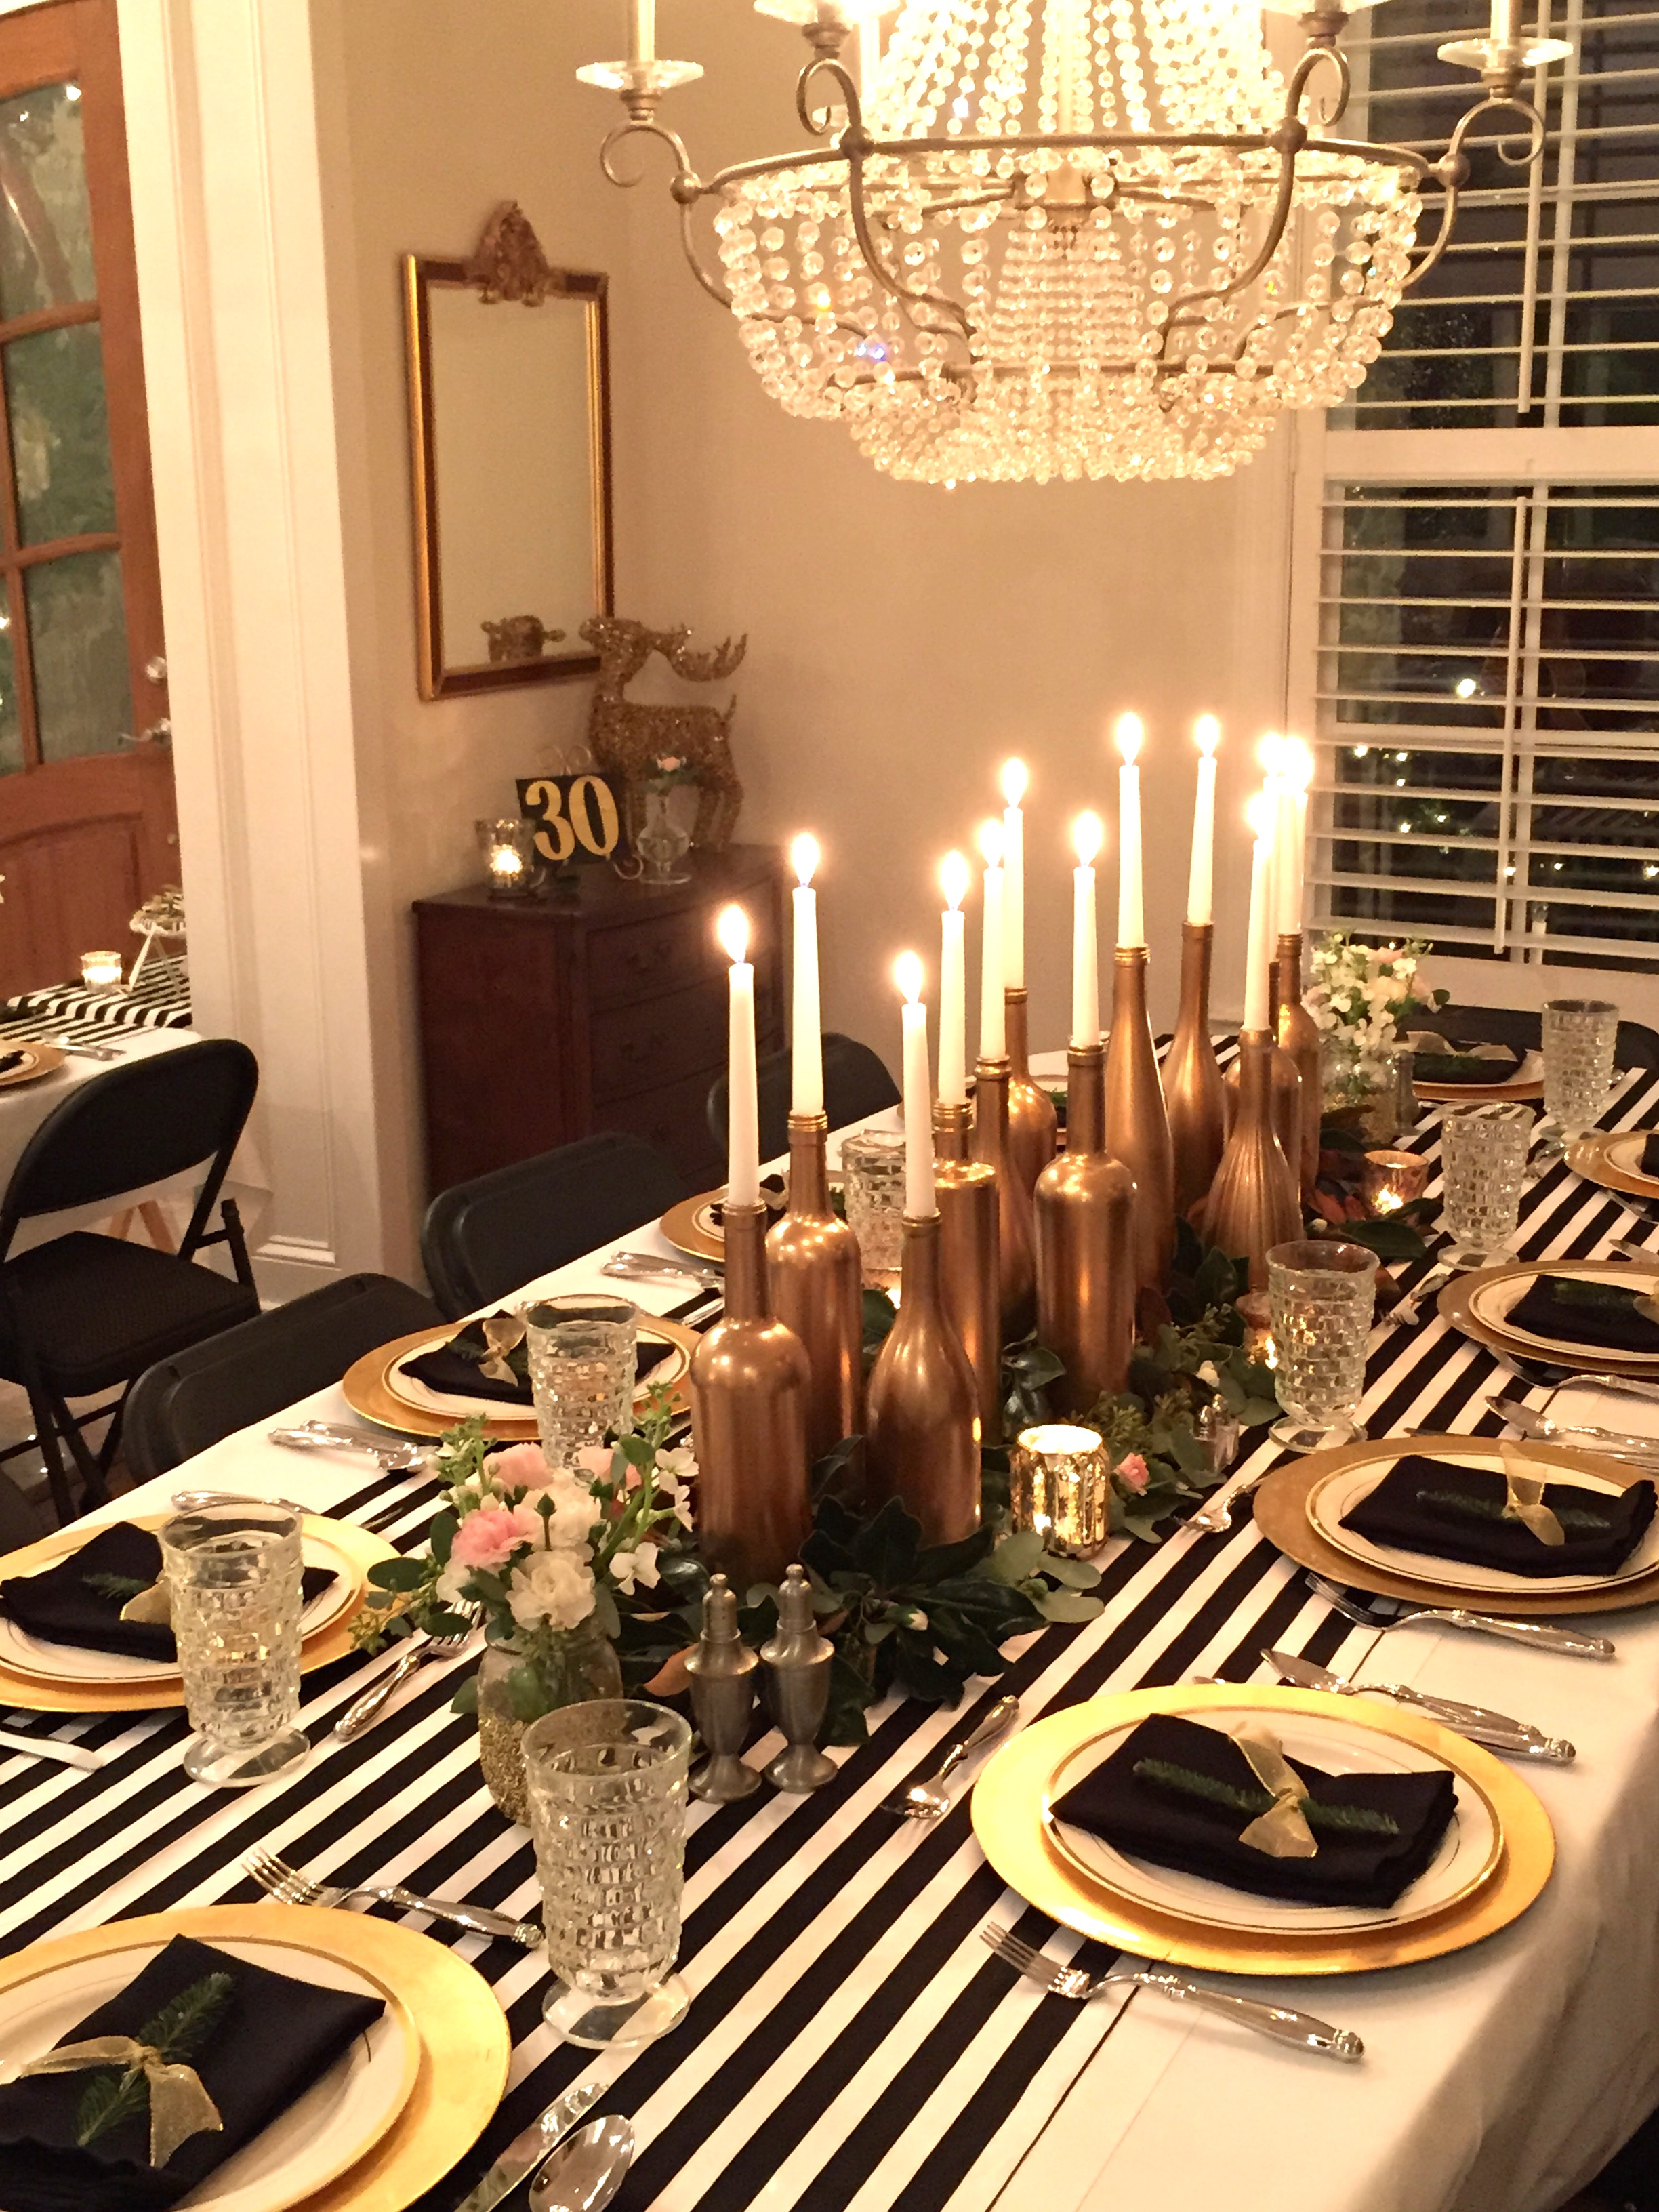 30th Birthday Decor Black And White With Gold Accents Party